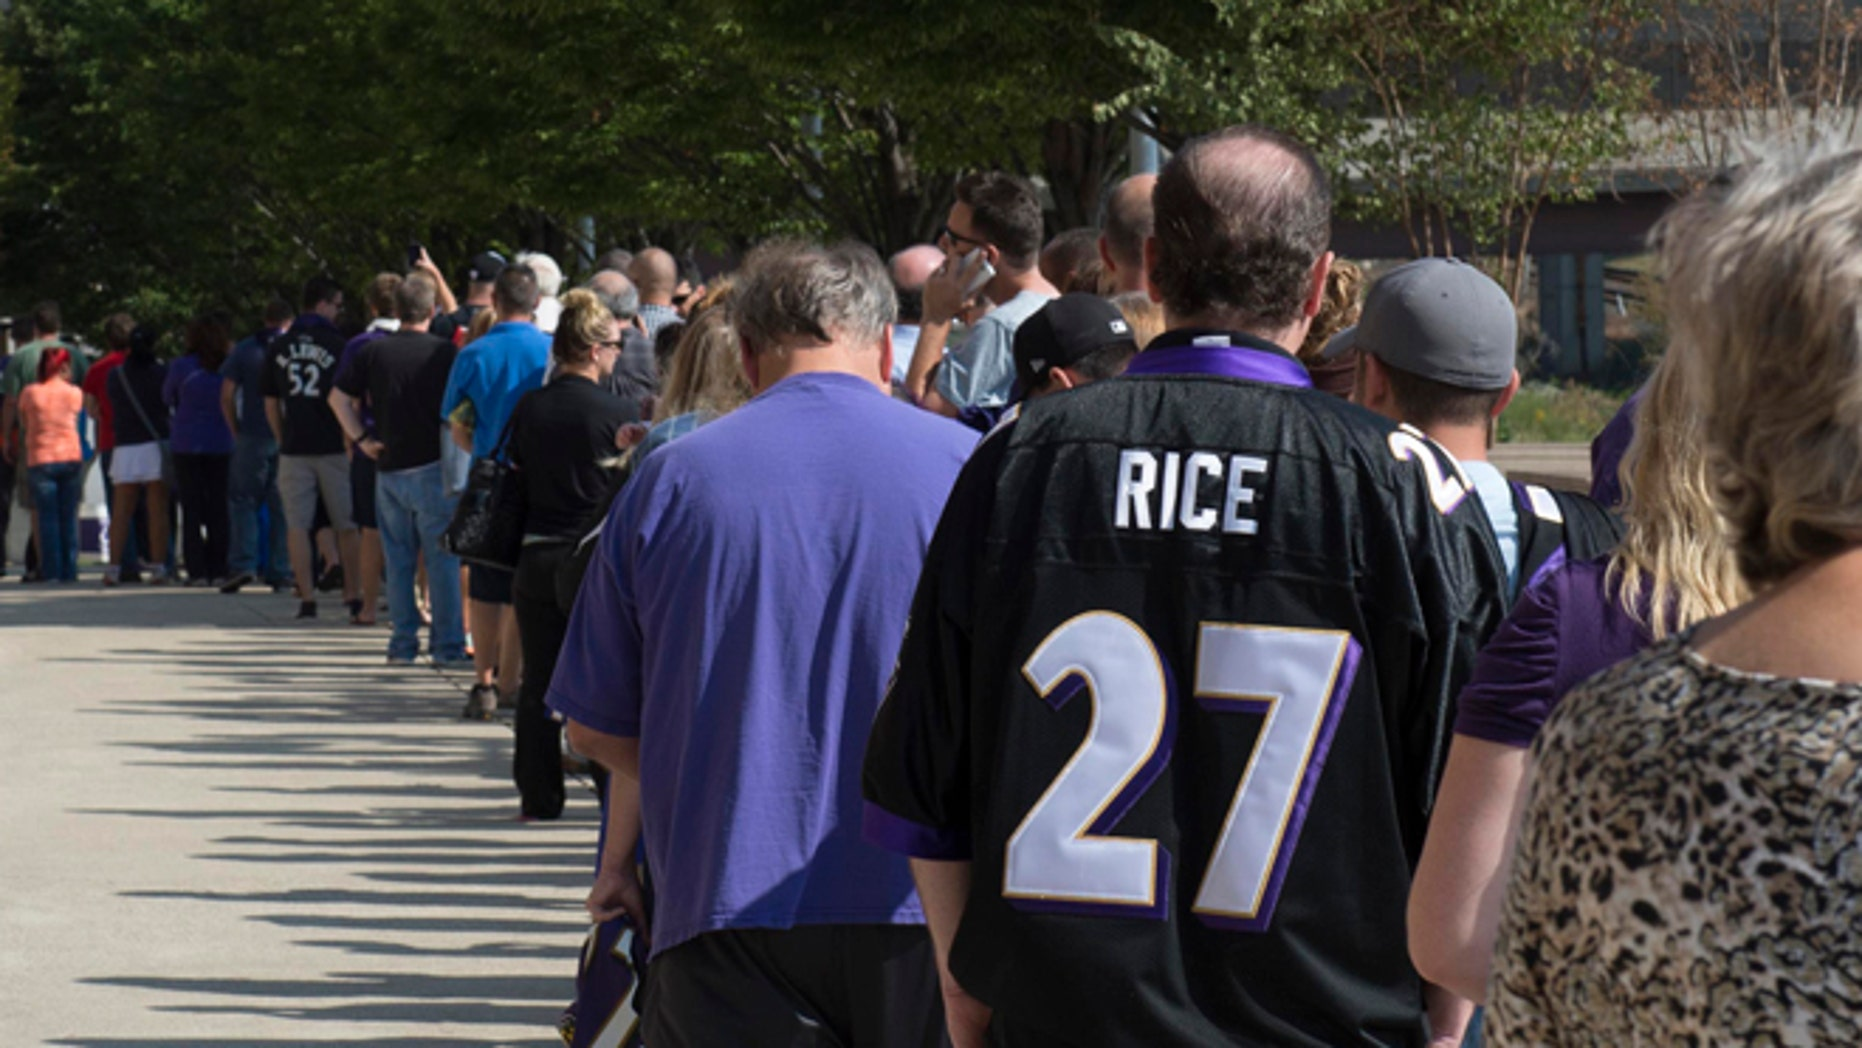 Sep 19: Baltimore Ravens fans wait in line over an hour to exchange their Ray Rice jerseys for new NFL jerseys at M&T Bank Stadium.